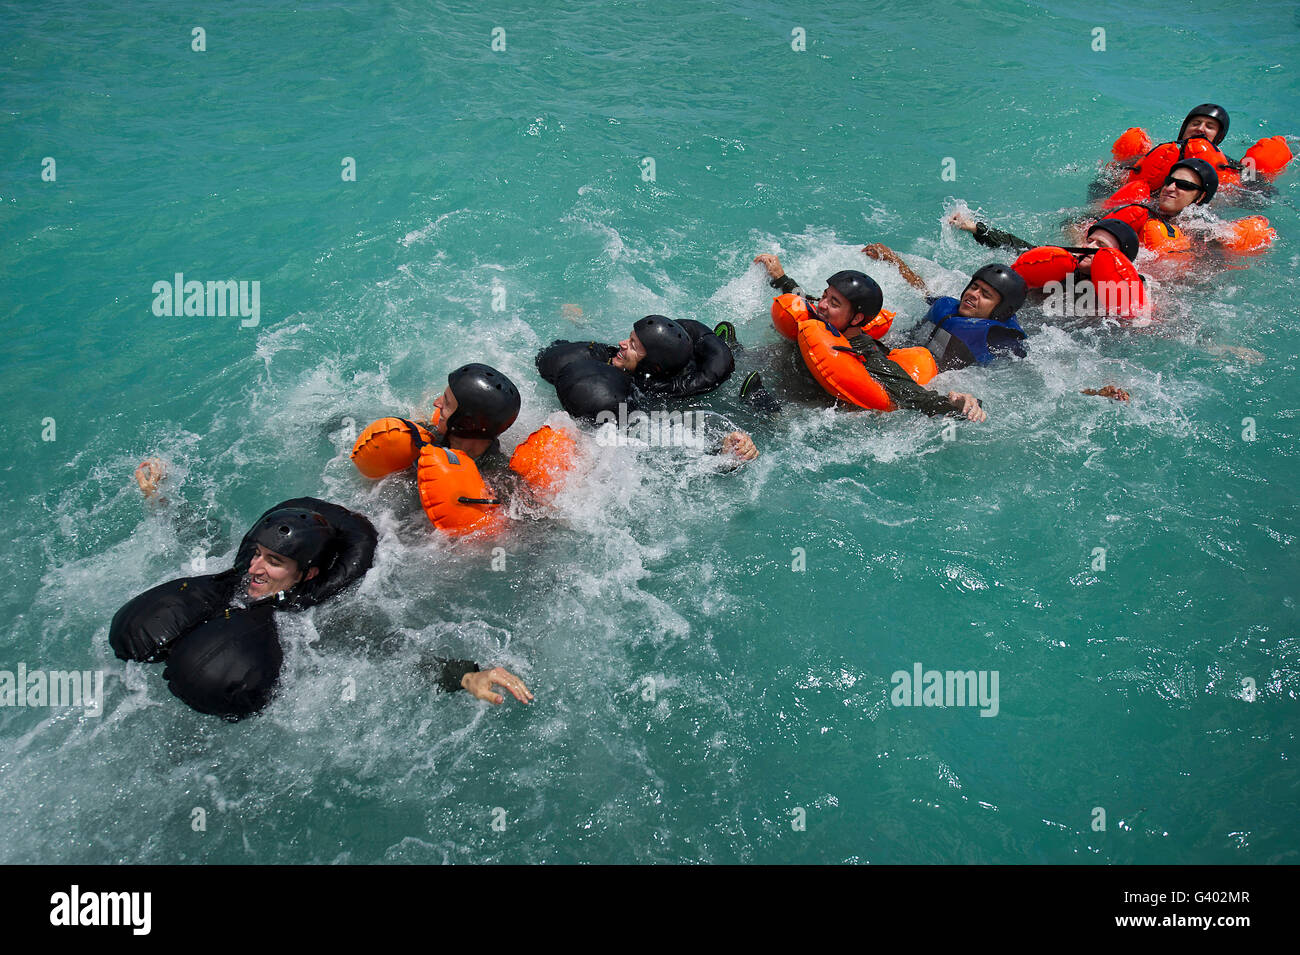 Group swimming technique during a water survival refresher class. - Stock Image